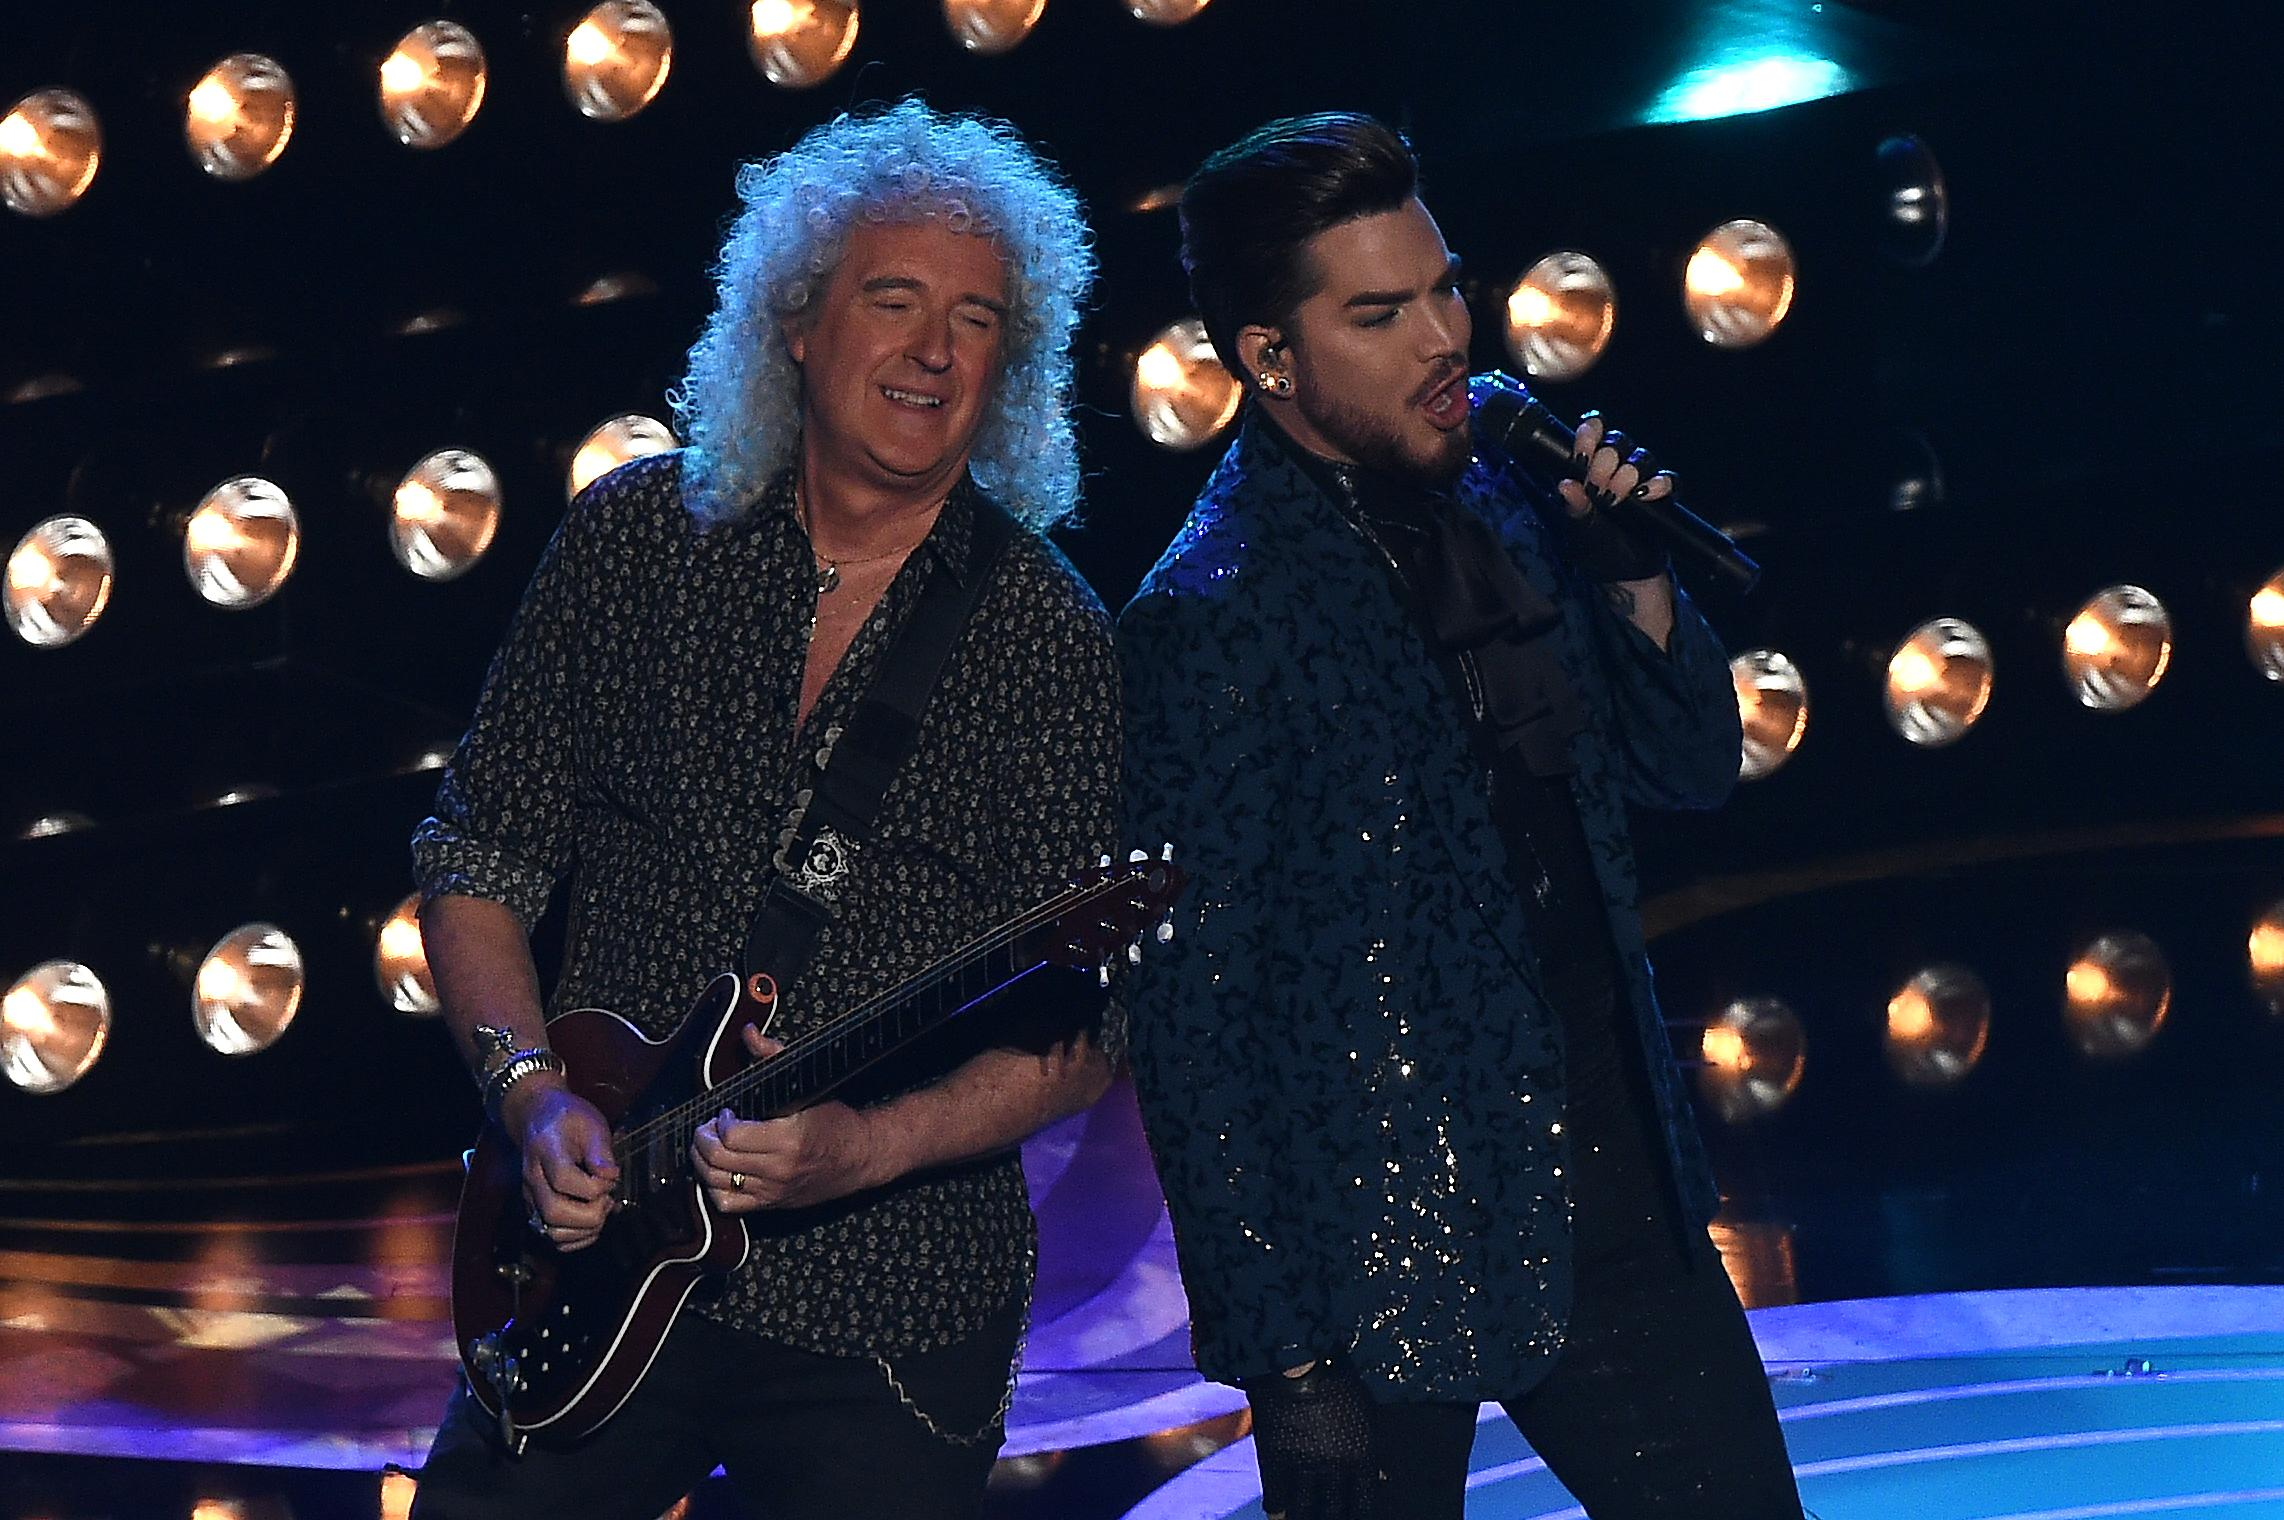 Watch Queen, Adam Lambert Honor Healthcare Workers as 'Champions'